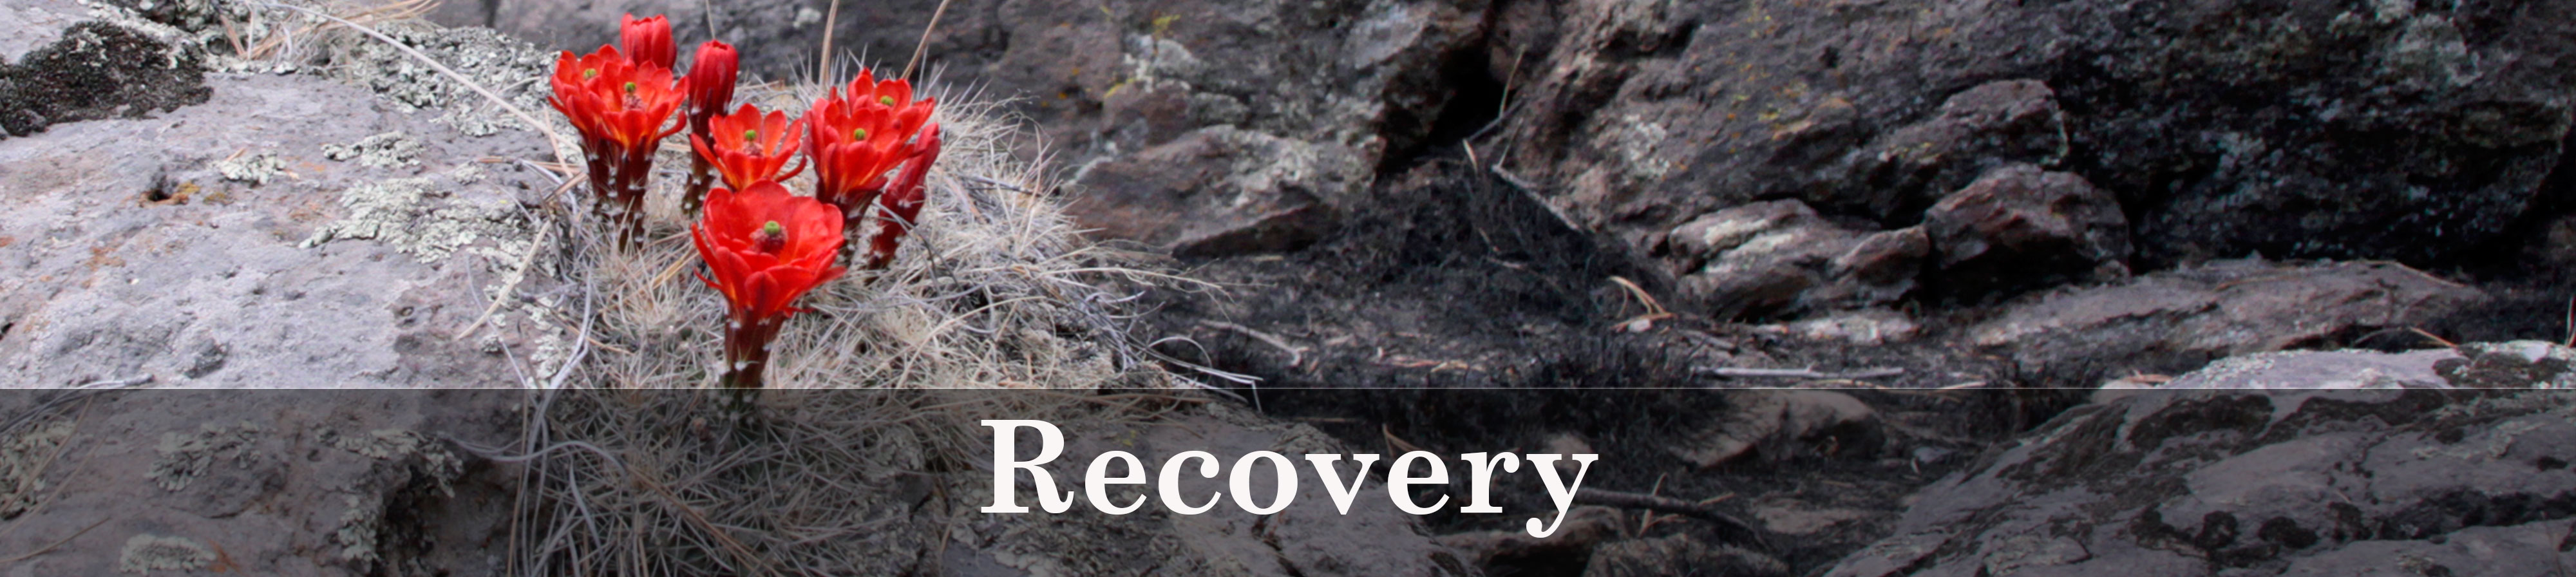 Wallow Fire Recovery